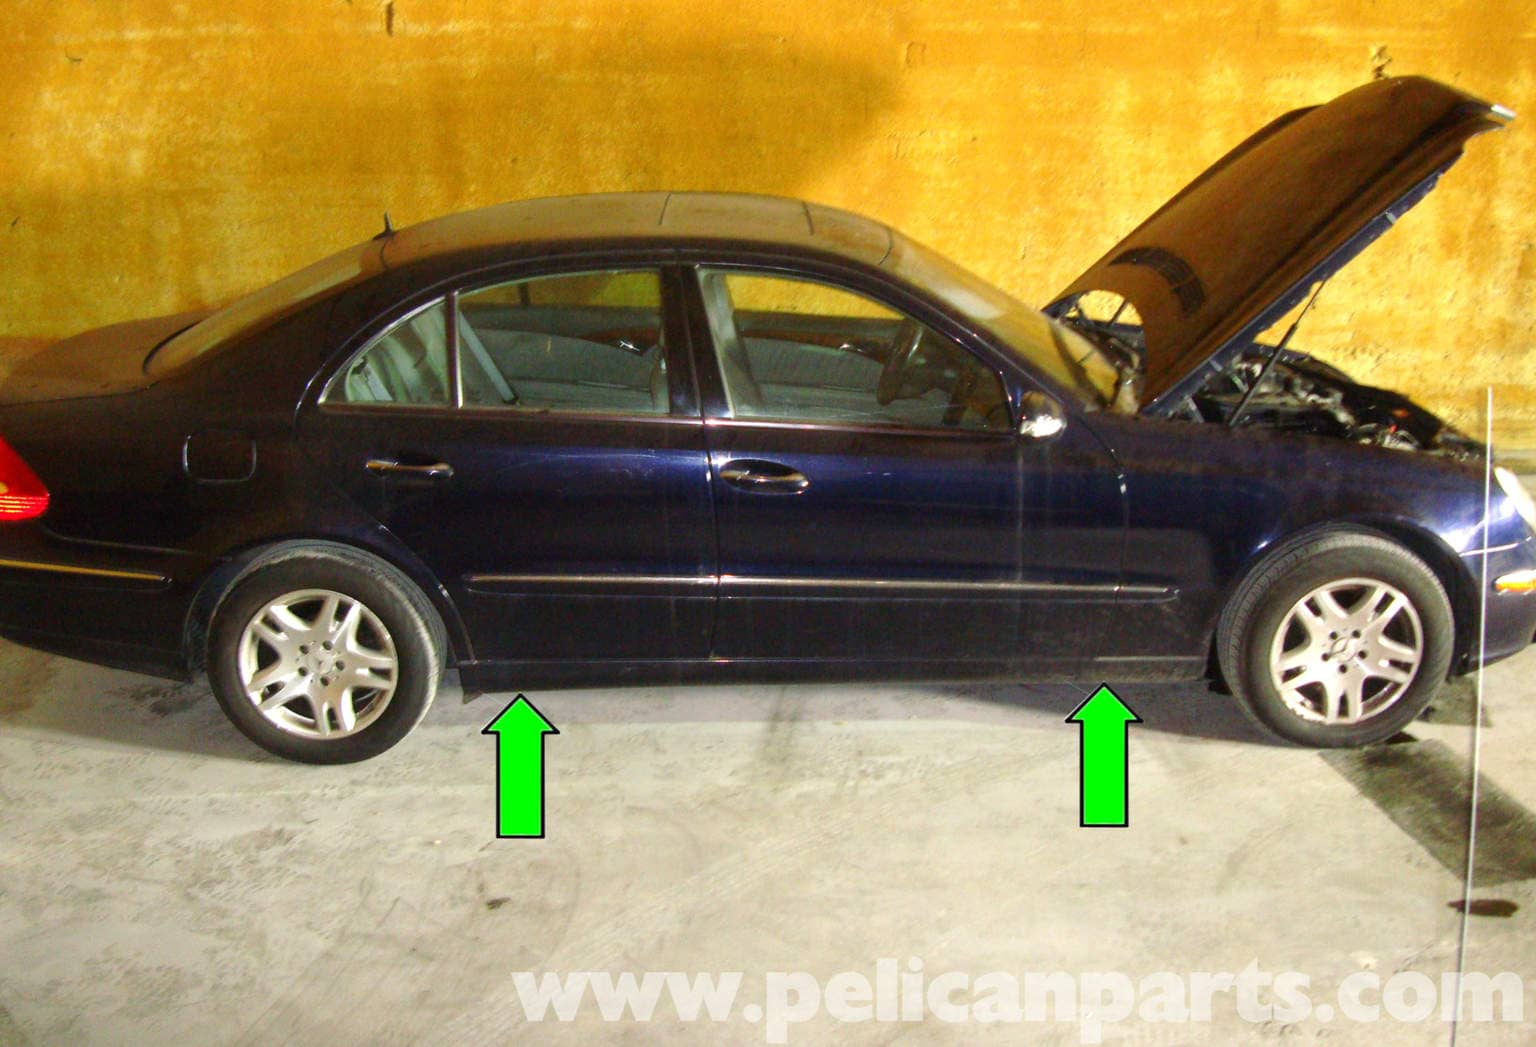 MERCEDES E Class W211 CLS W219 SUBFRAME JACK POINT PAD BLOCK UNDER BODY JACKING